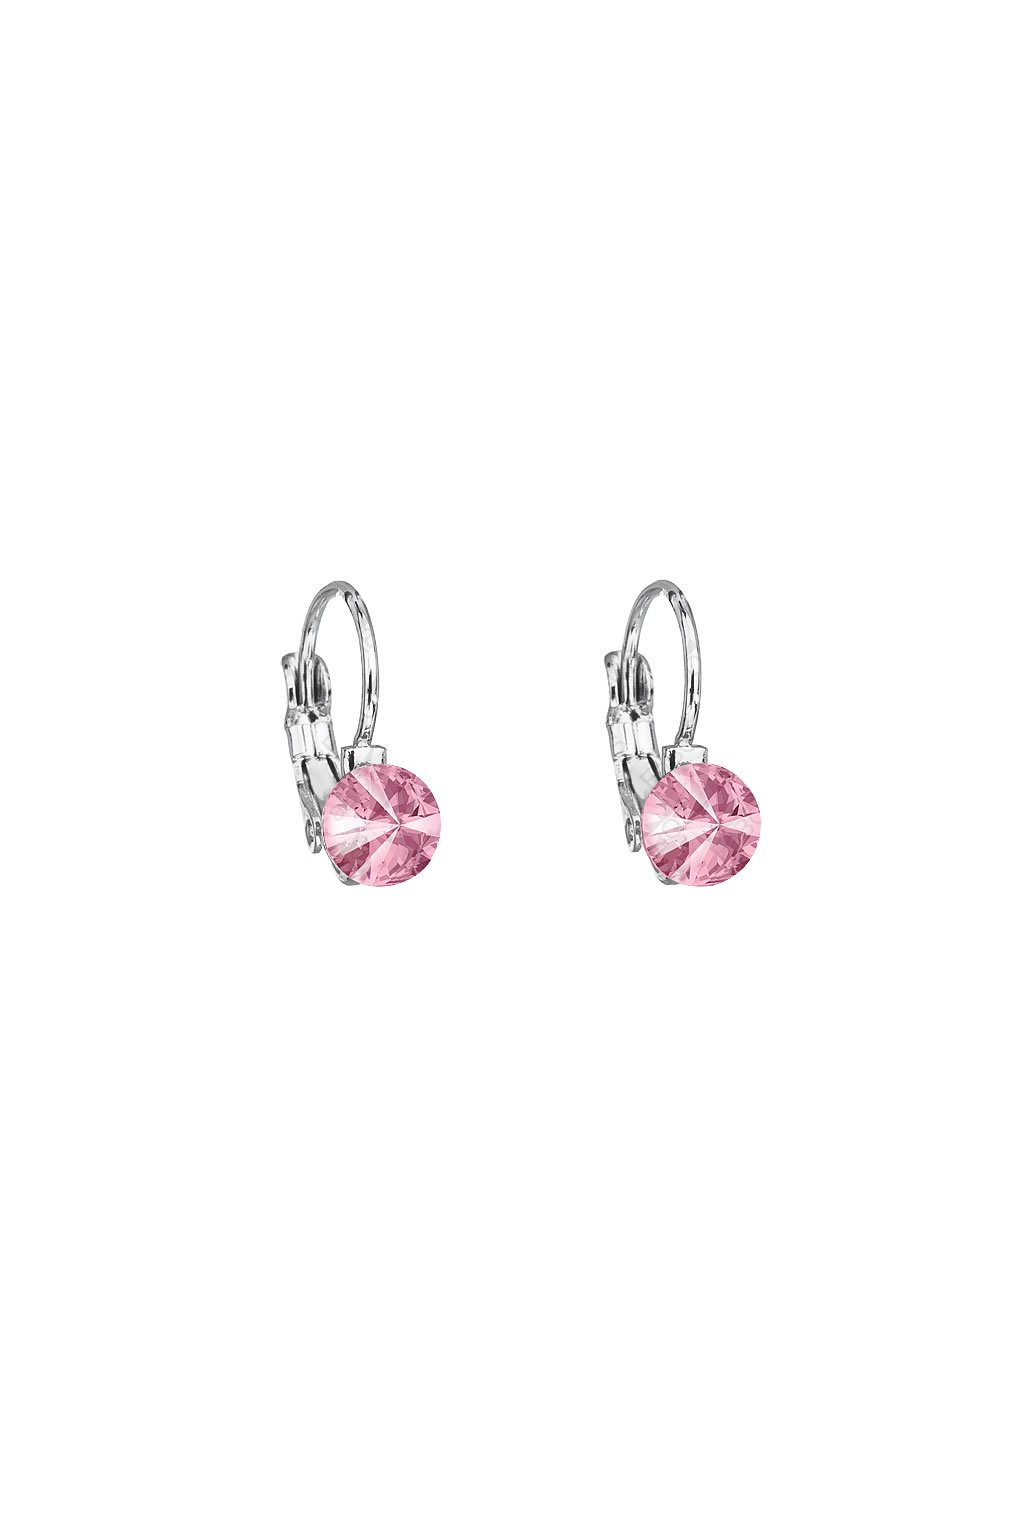 Náušnice Rivoli 6mm klapka Light Rose Swarovski